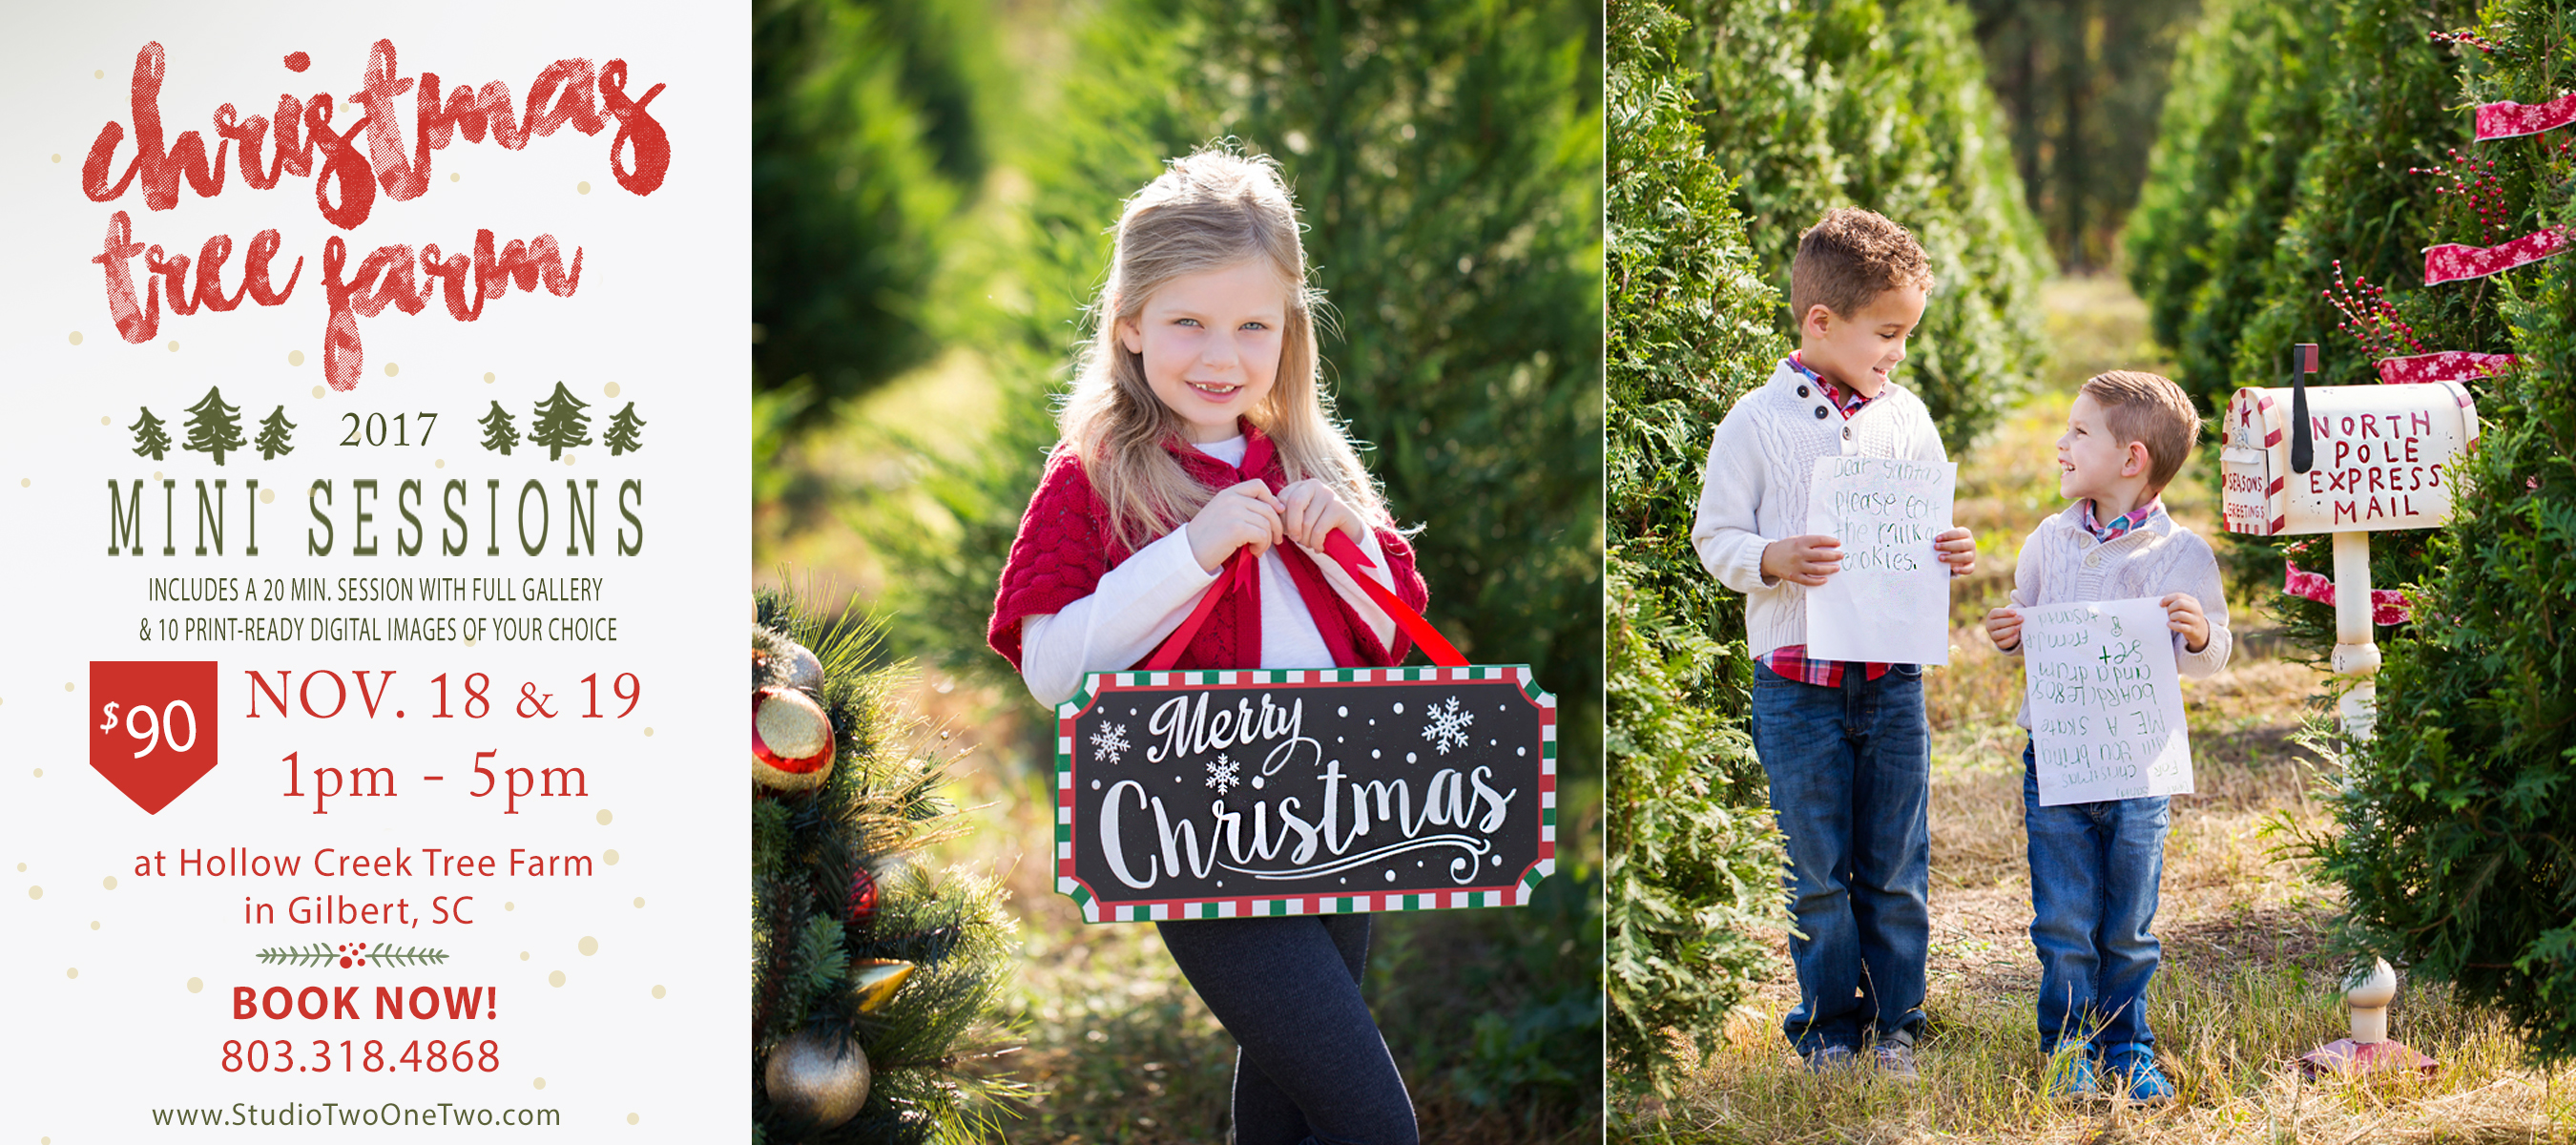 Christmas Tree Farm Mini Sessions.Christmas Family Portraits Hollow Creek Tree Farm Gilbert